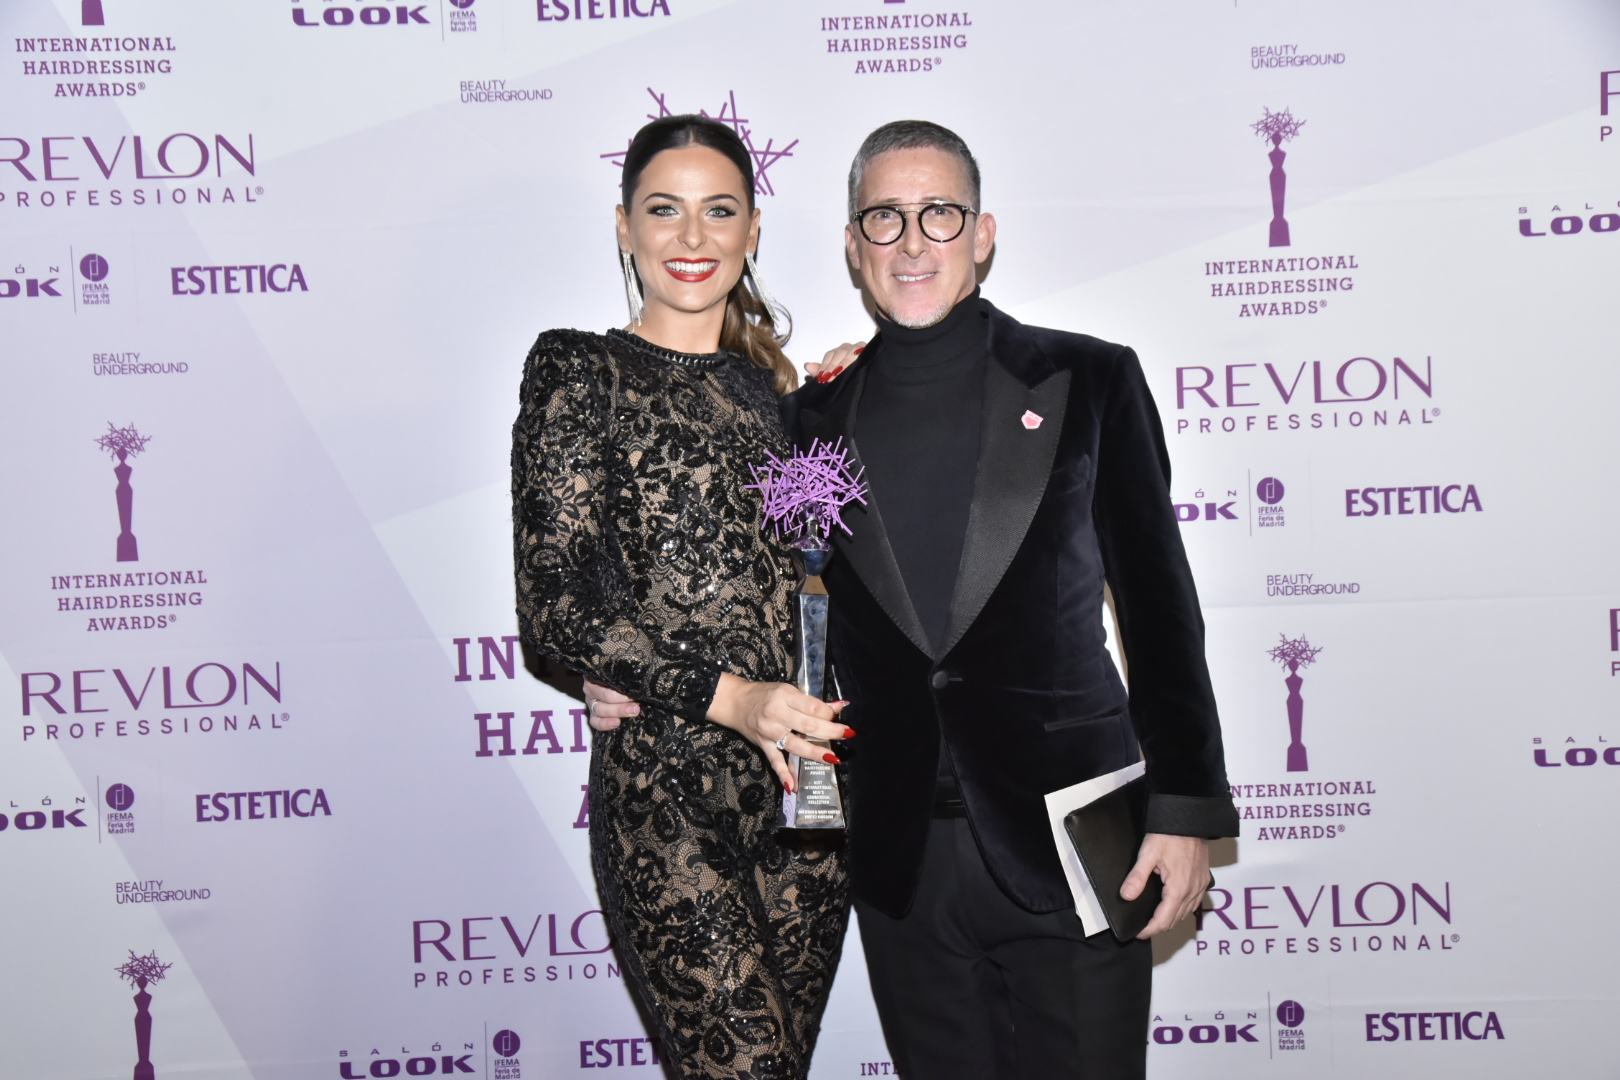 JIM SHAW AND DAISY CARTER OF TONI&GUY BILLERICAY SCOOP COVETED MEN'S AWARD AT 2020 INTERNATIONAL HAIRDRESSING AWARDS